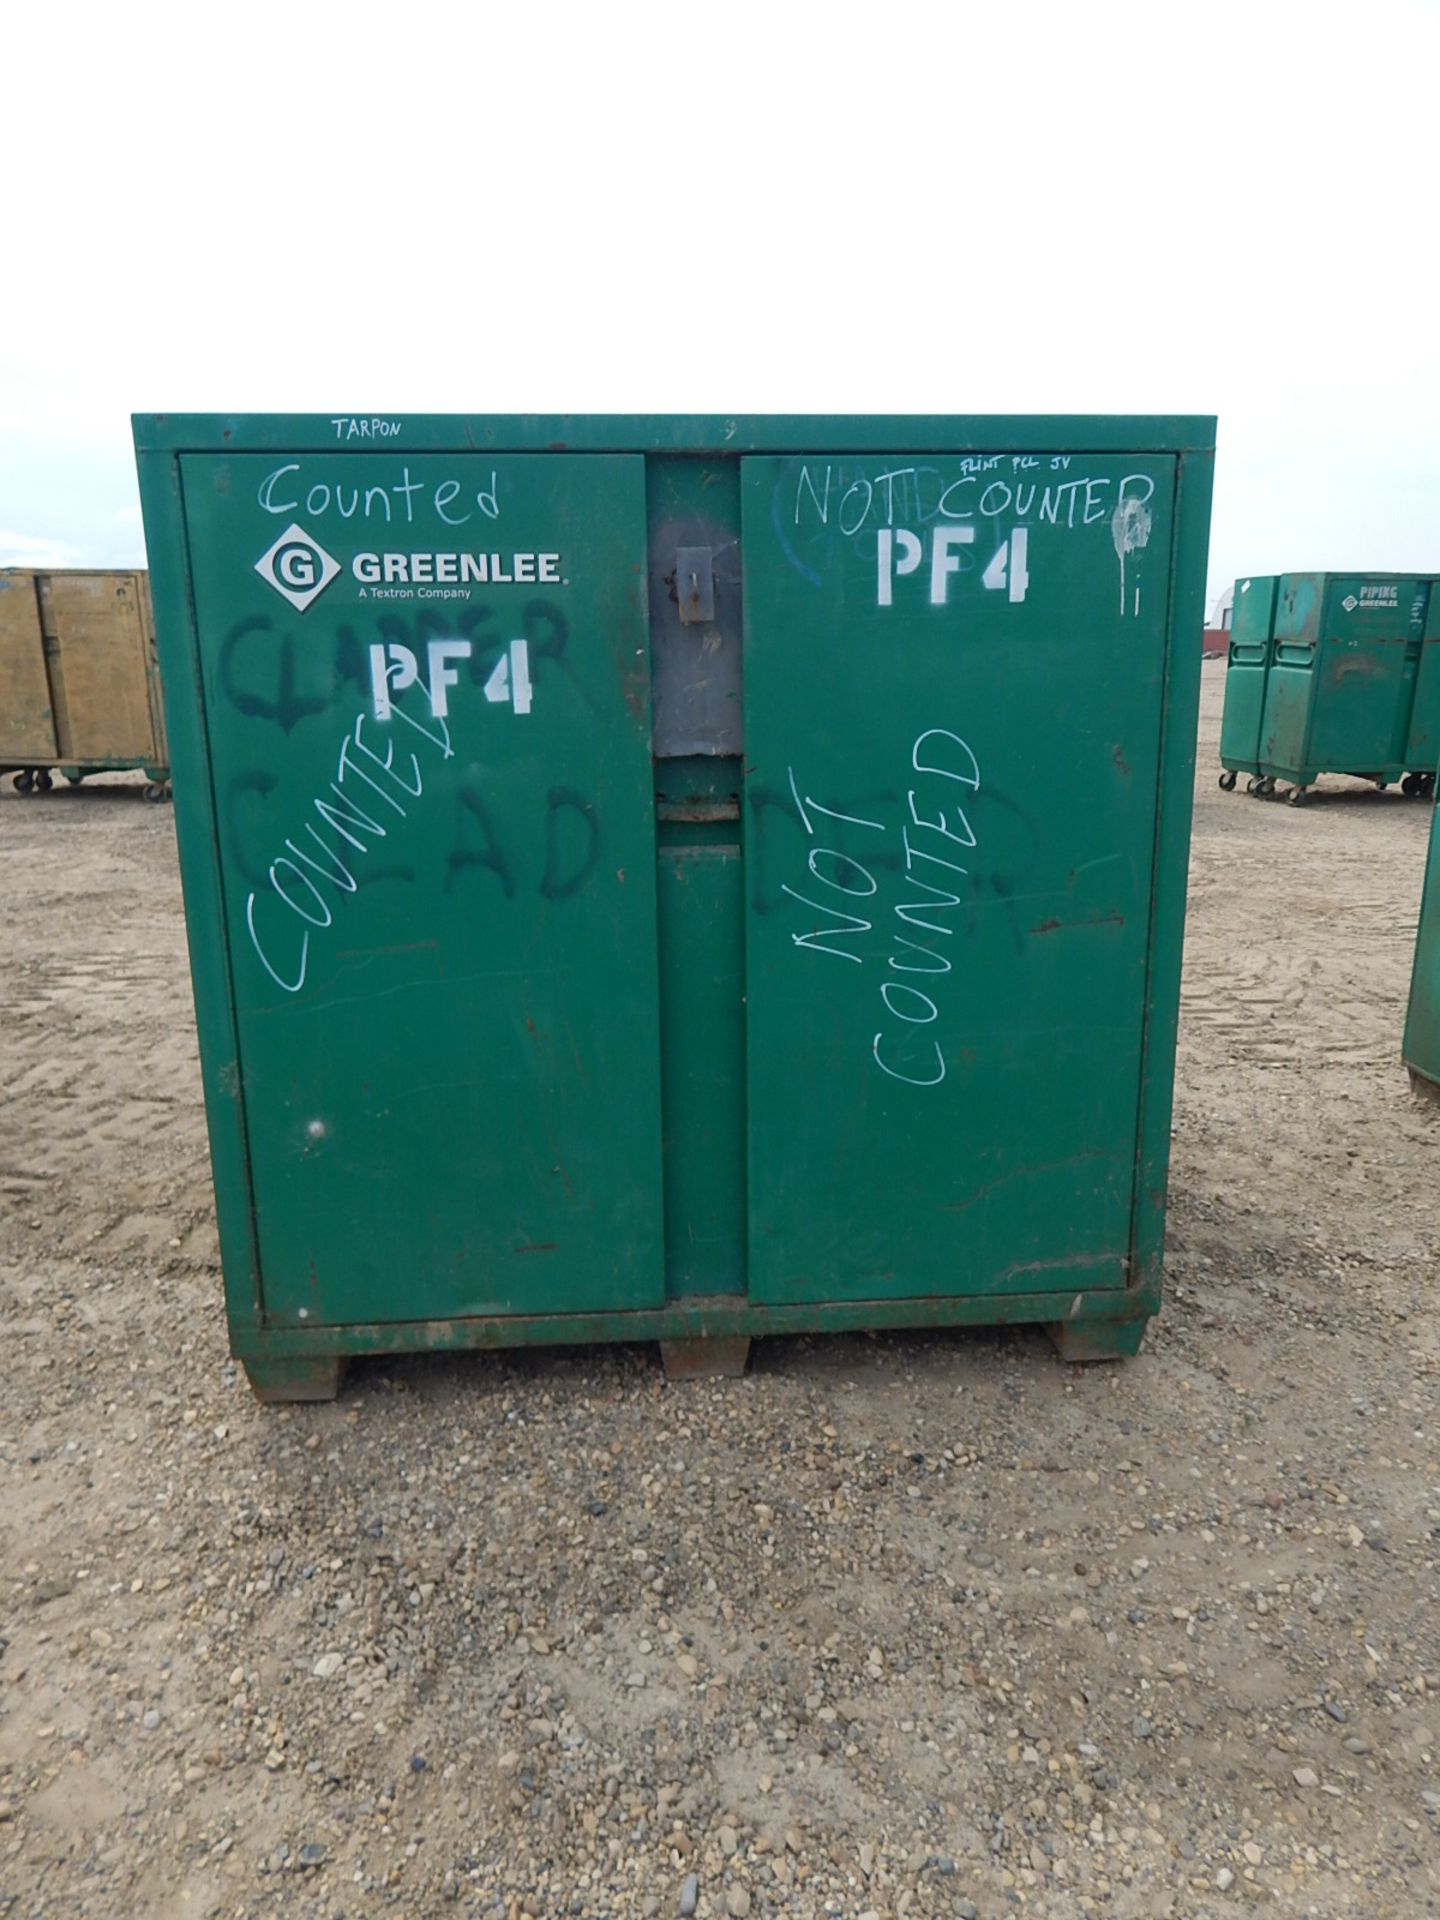 LOT/ (2) GREENLEE 2-DOOR JOB BOX CABINETS - Image 3 of 4